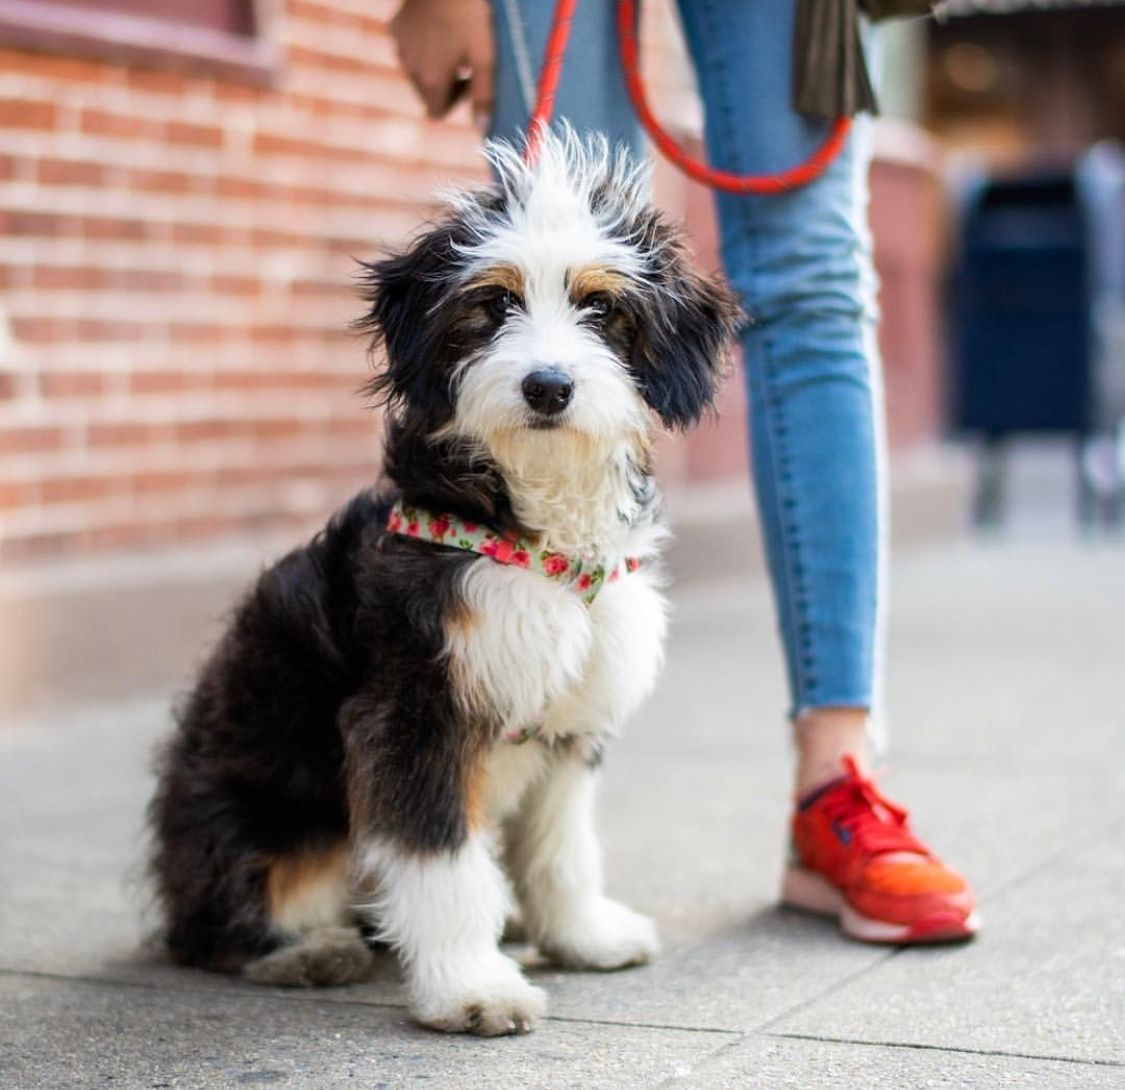 Pin By Samantha Hornung On Puppy Love Bernedoodle Bernadoodle Bernese Mountain Dog Poodle